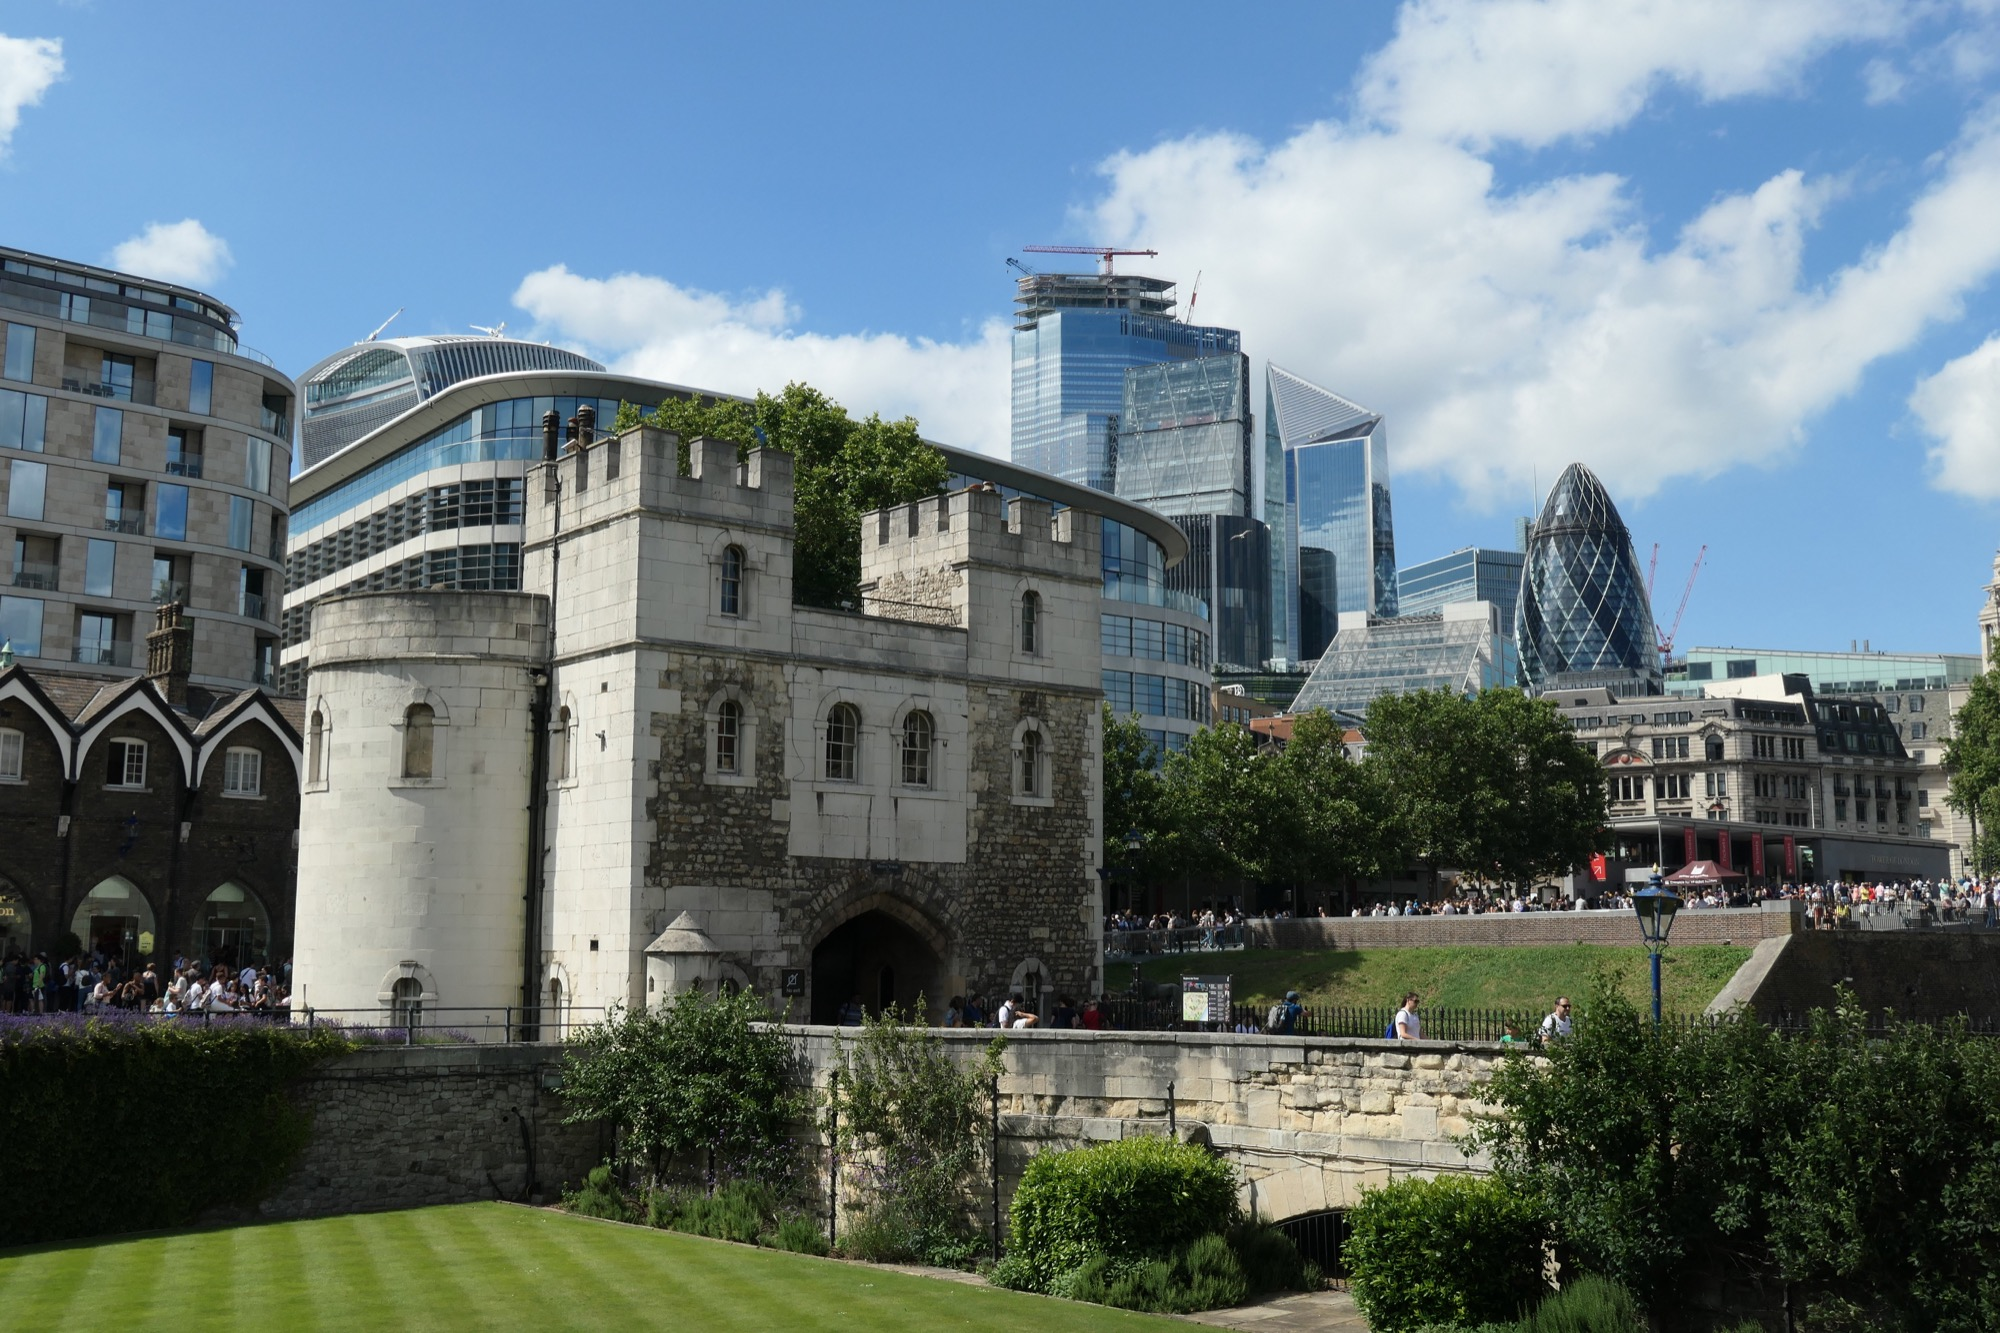 The entrance to the Tower of London